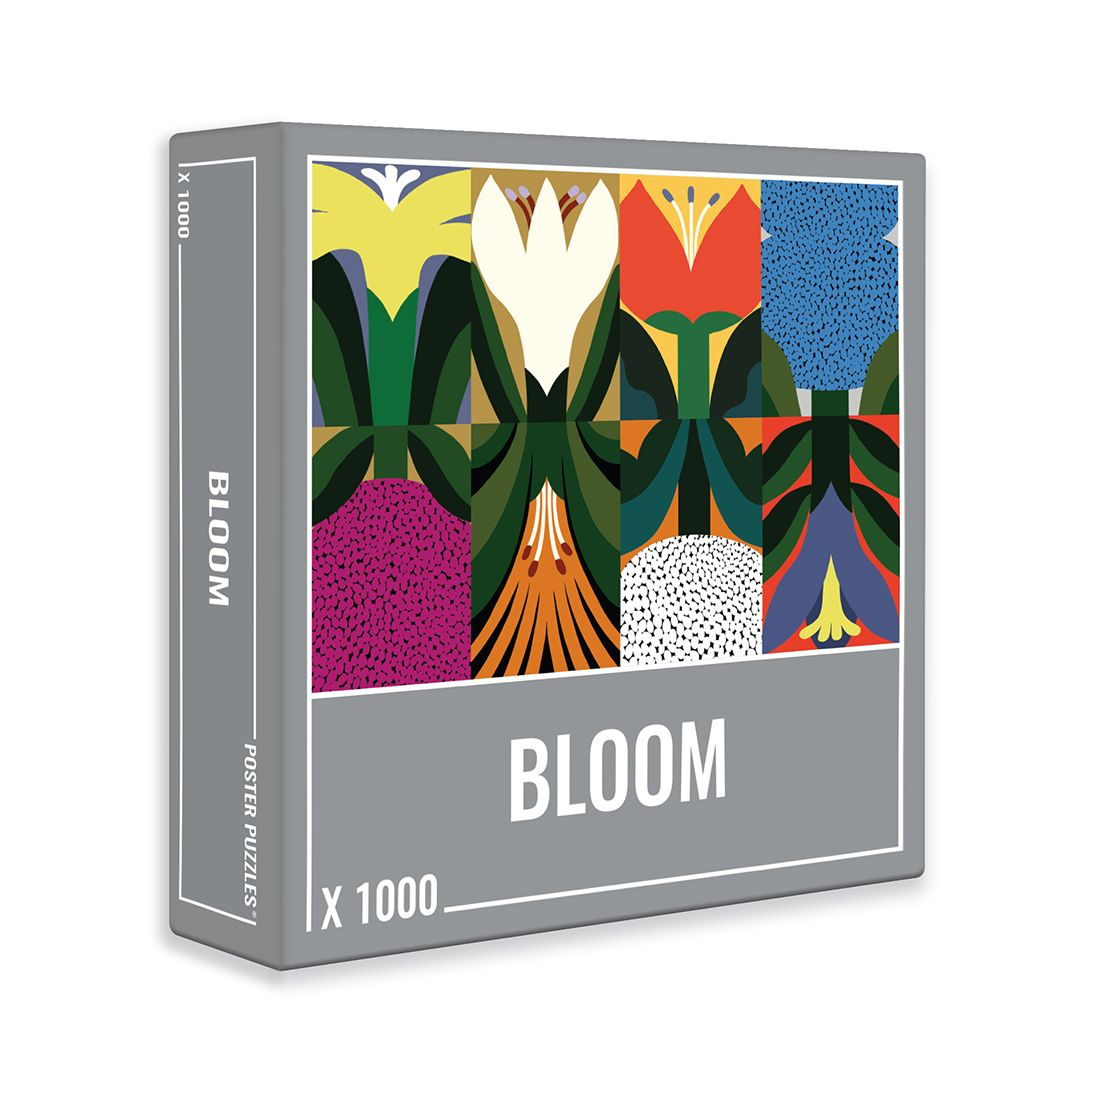 Cloudberries Bloom Puzzle Perfect Adult Mindfulness Gift